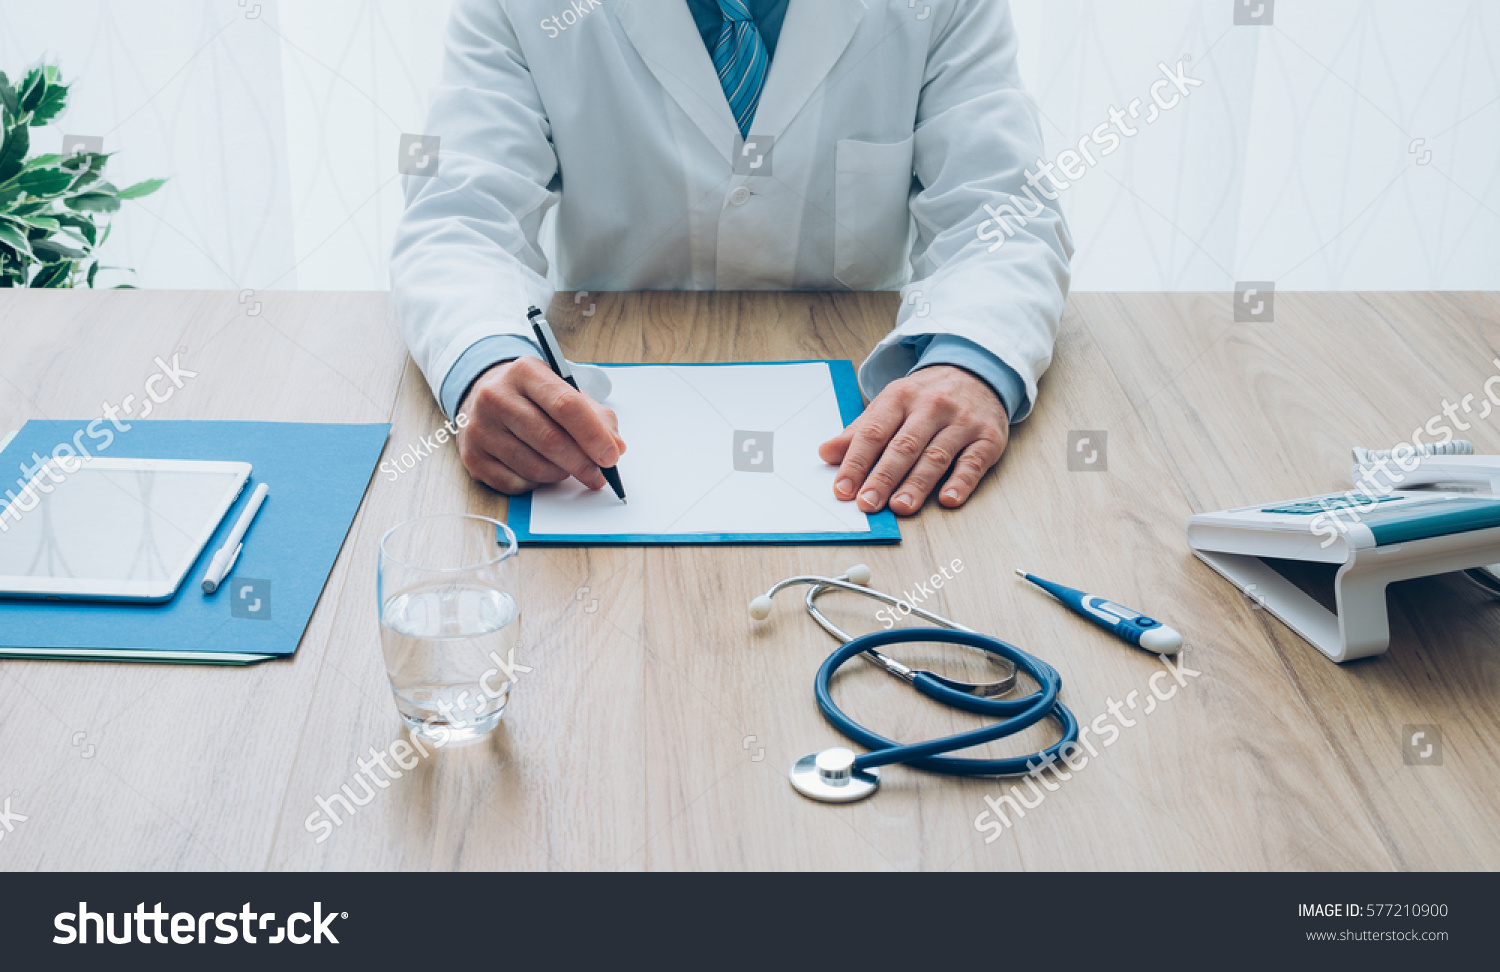 Professional essay writers doctor professionals